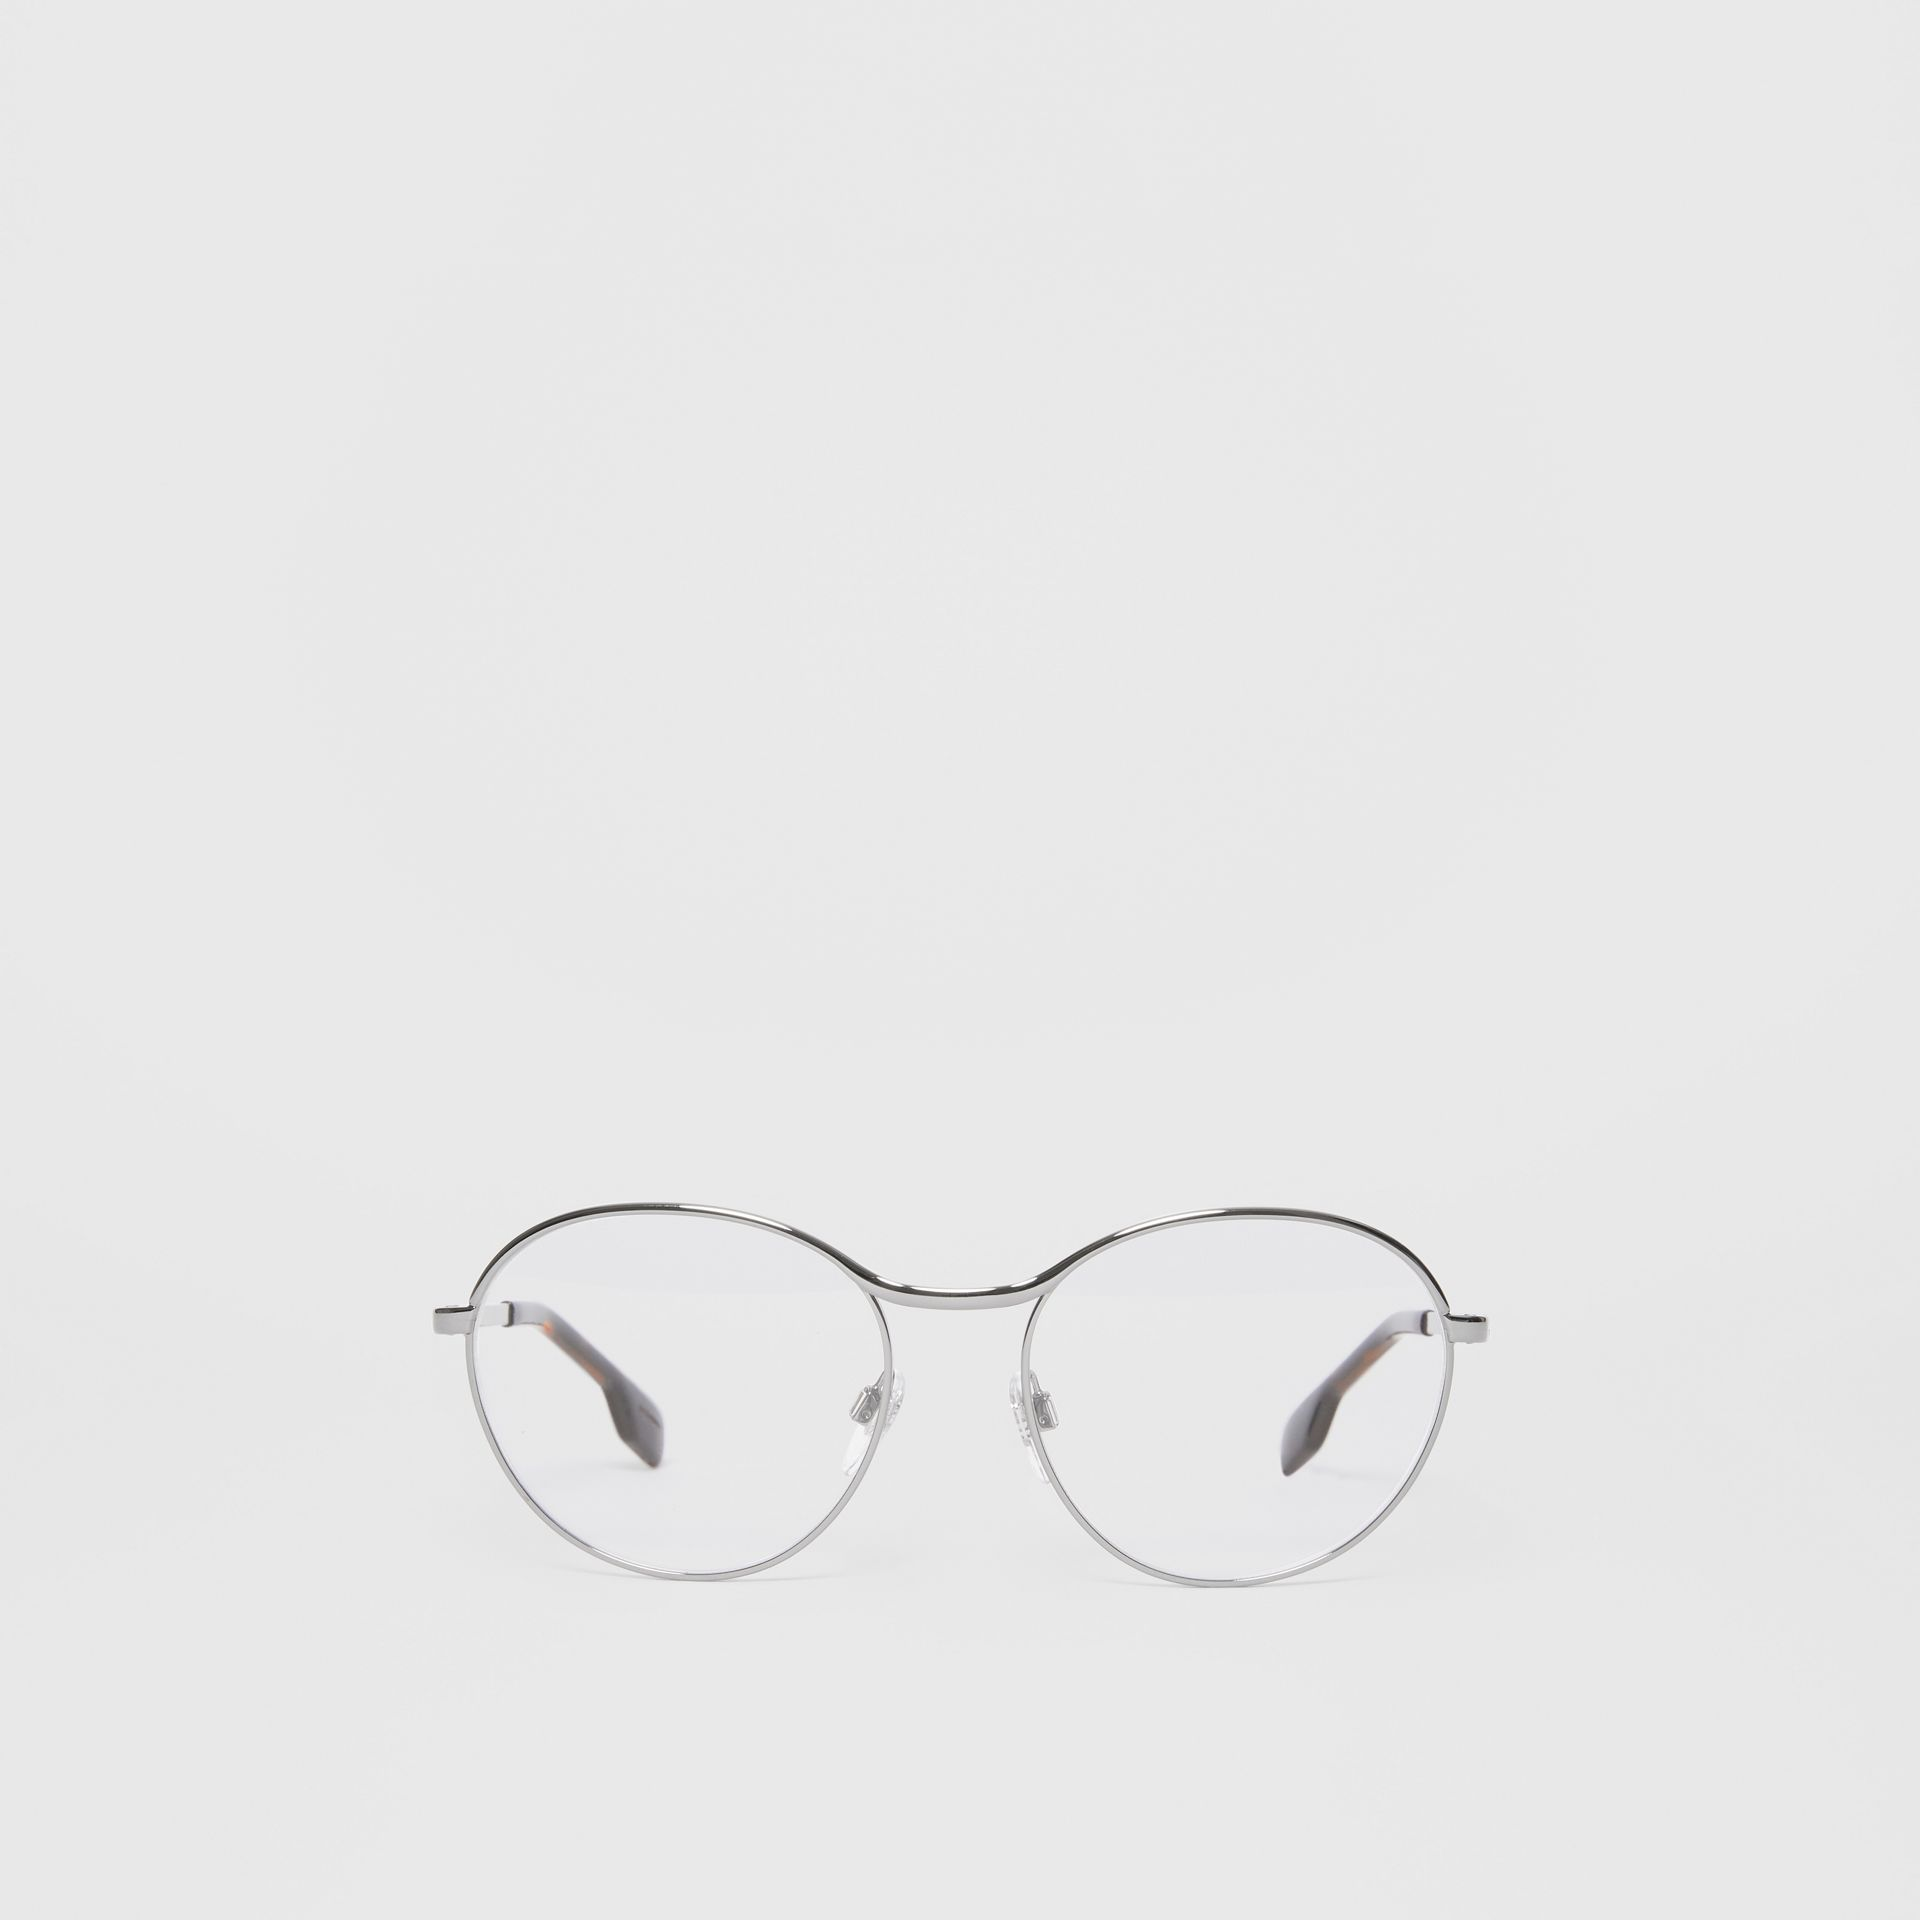 Round Optical Frames in Gunmetal Grey - Women | Burberry - gallery image 0